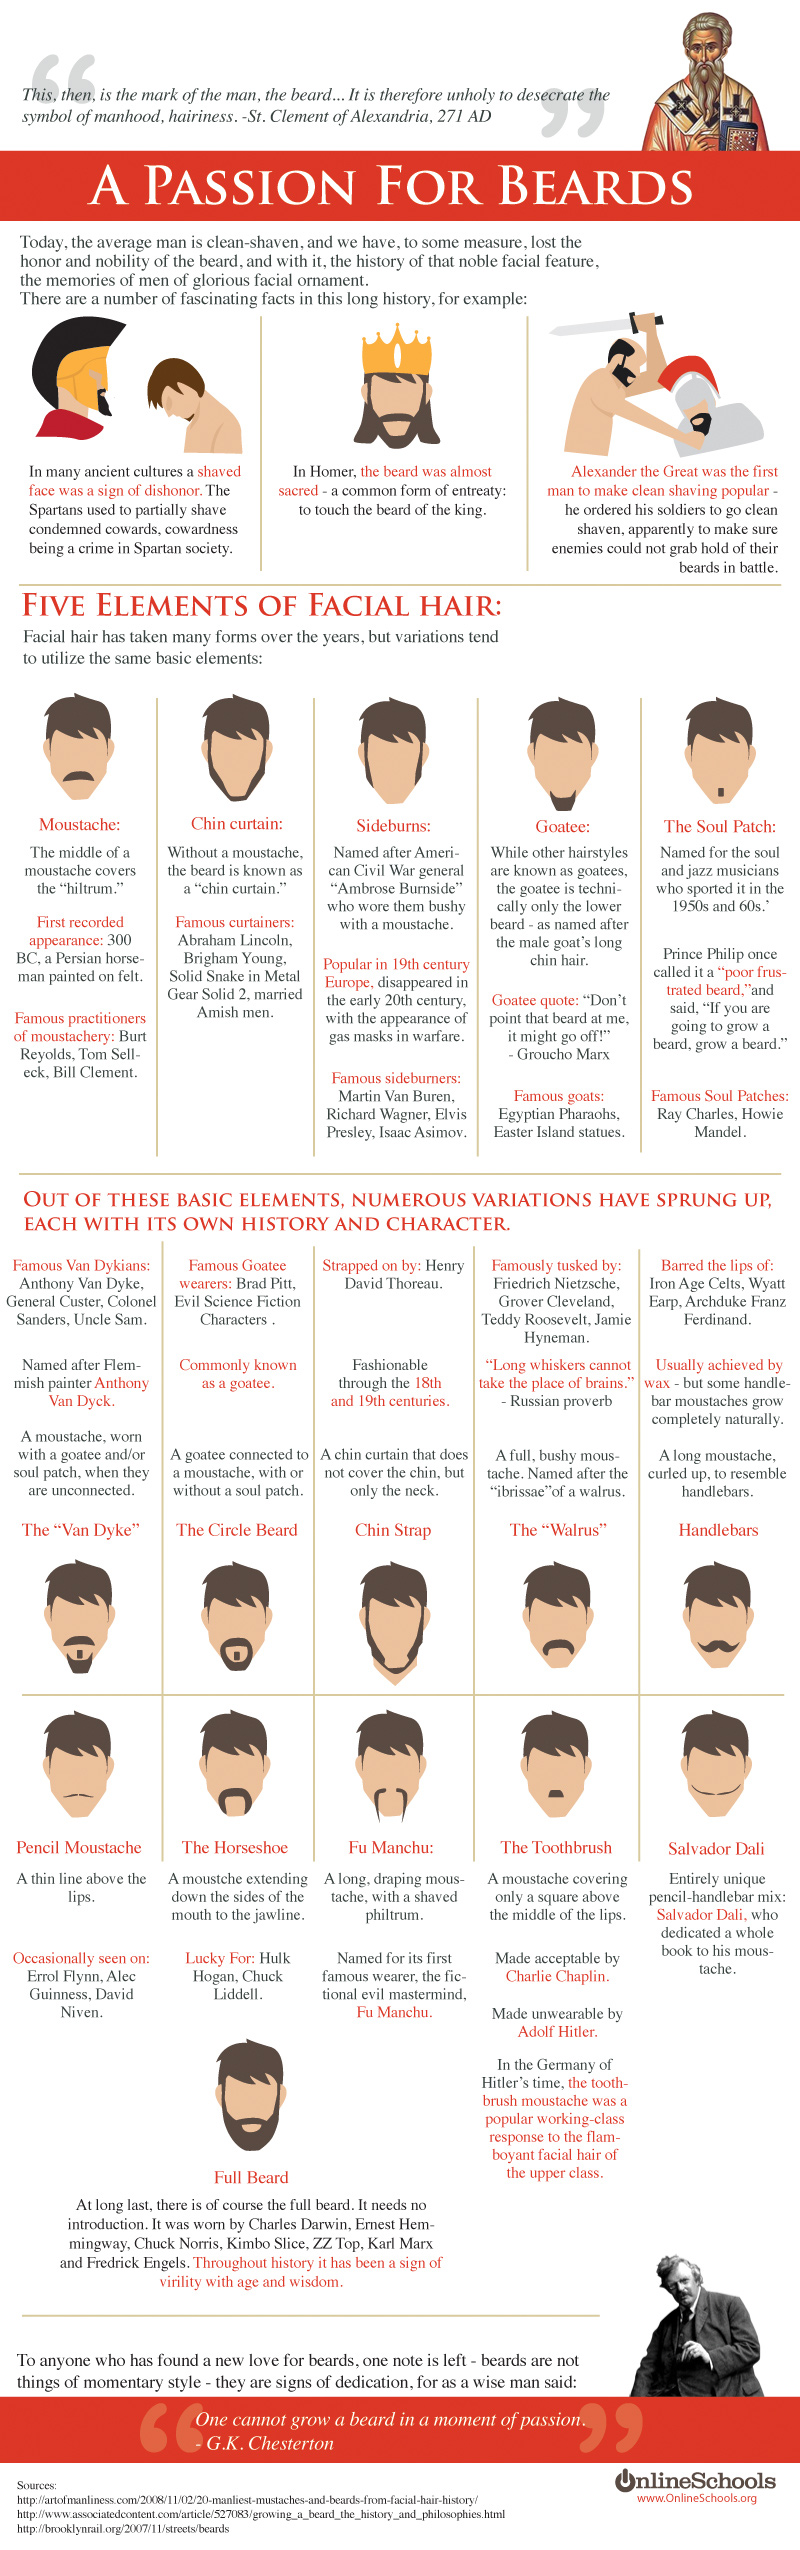 Types of Beard Styles The 16 Different Types of Beard Styles